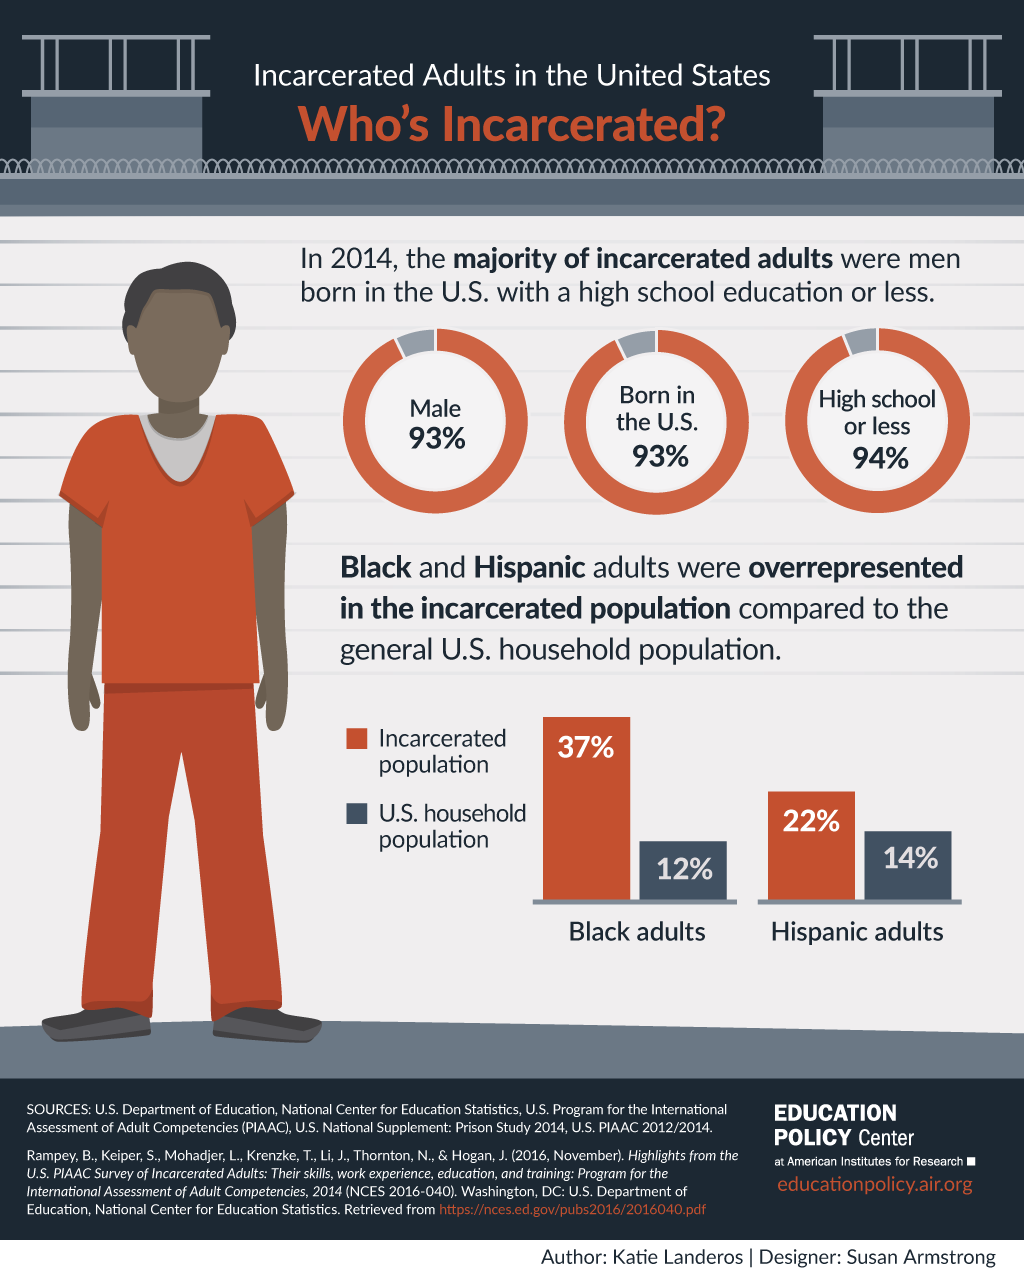 IncarceratedAdults-Infographic1.png